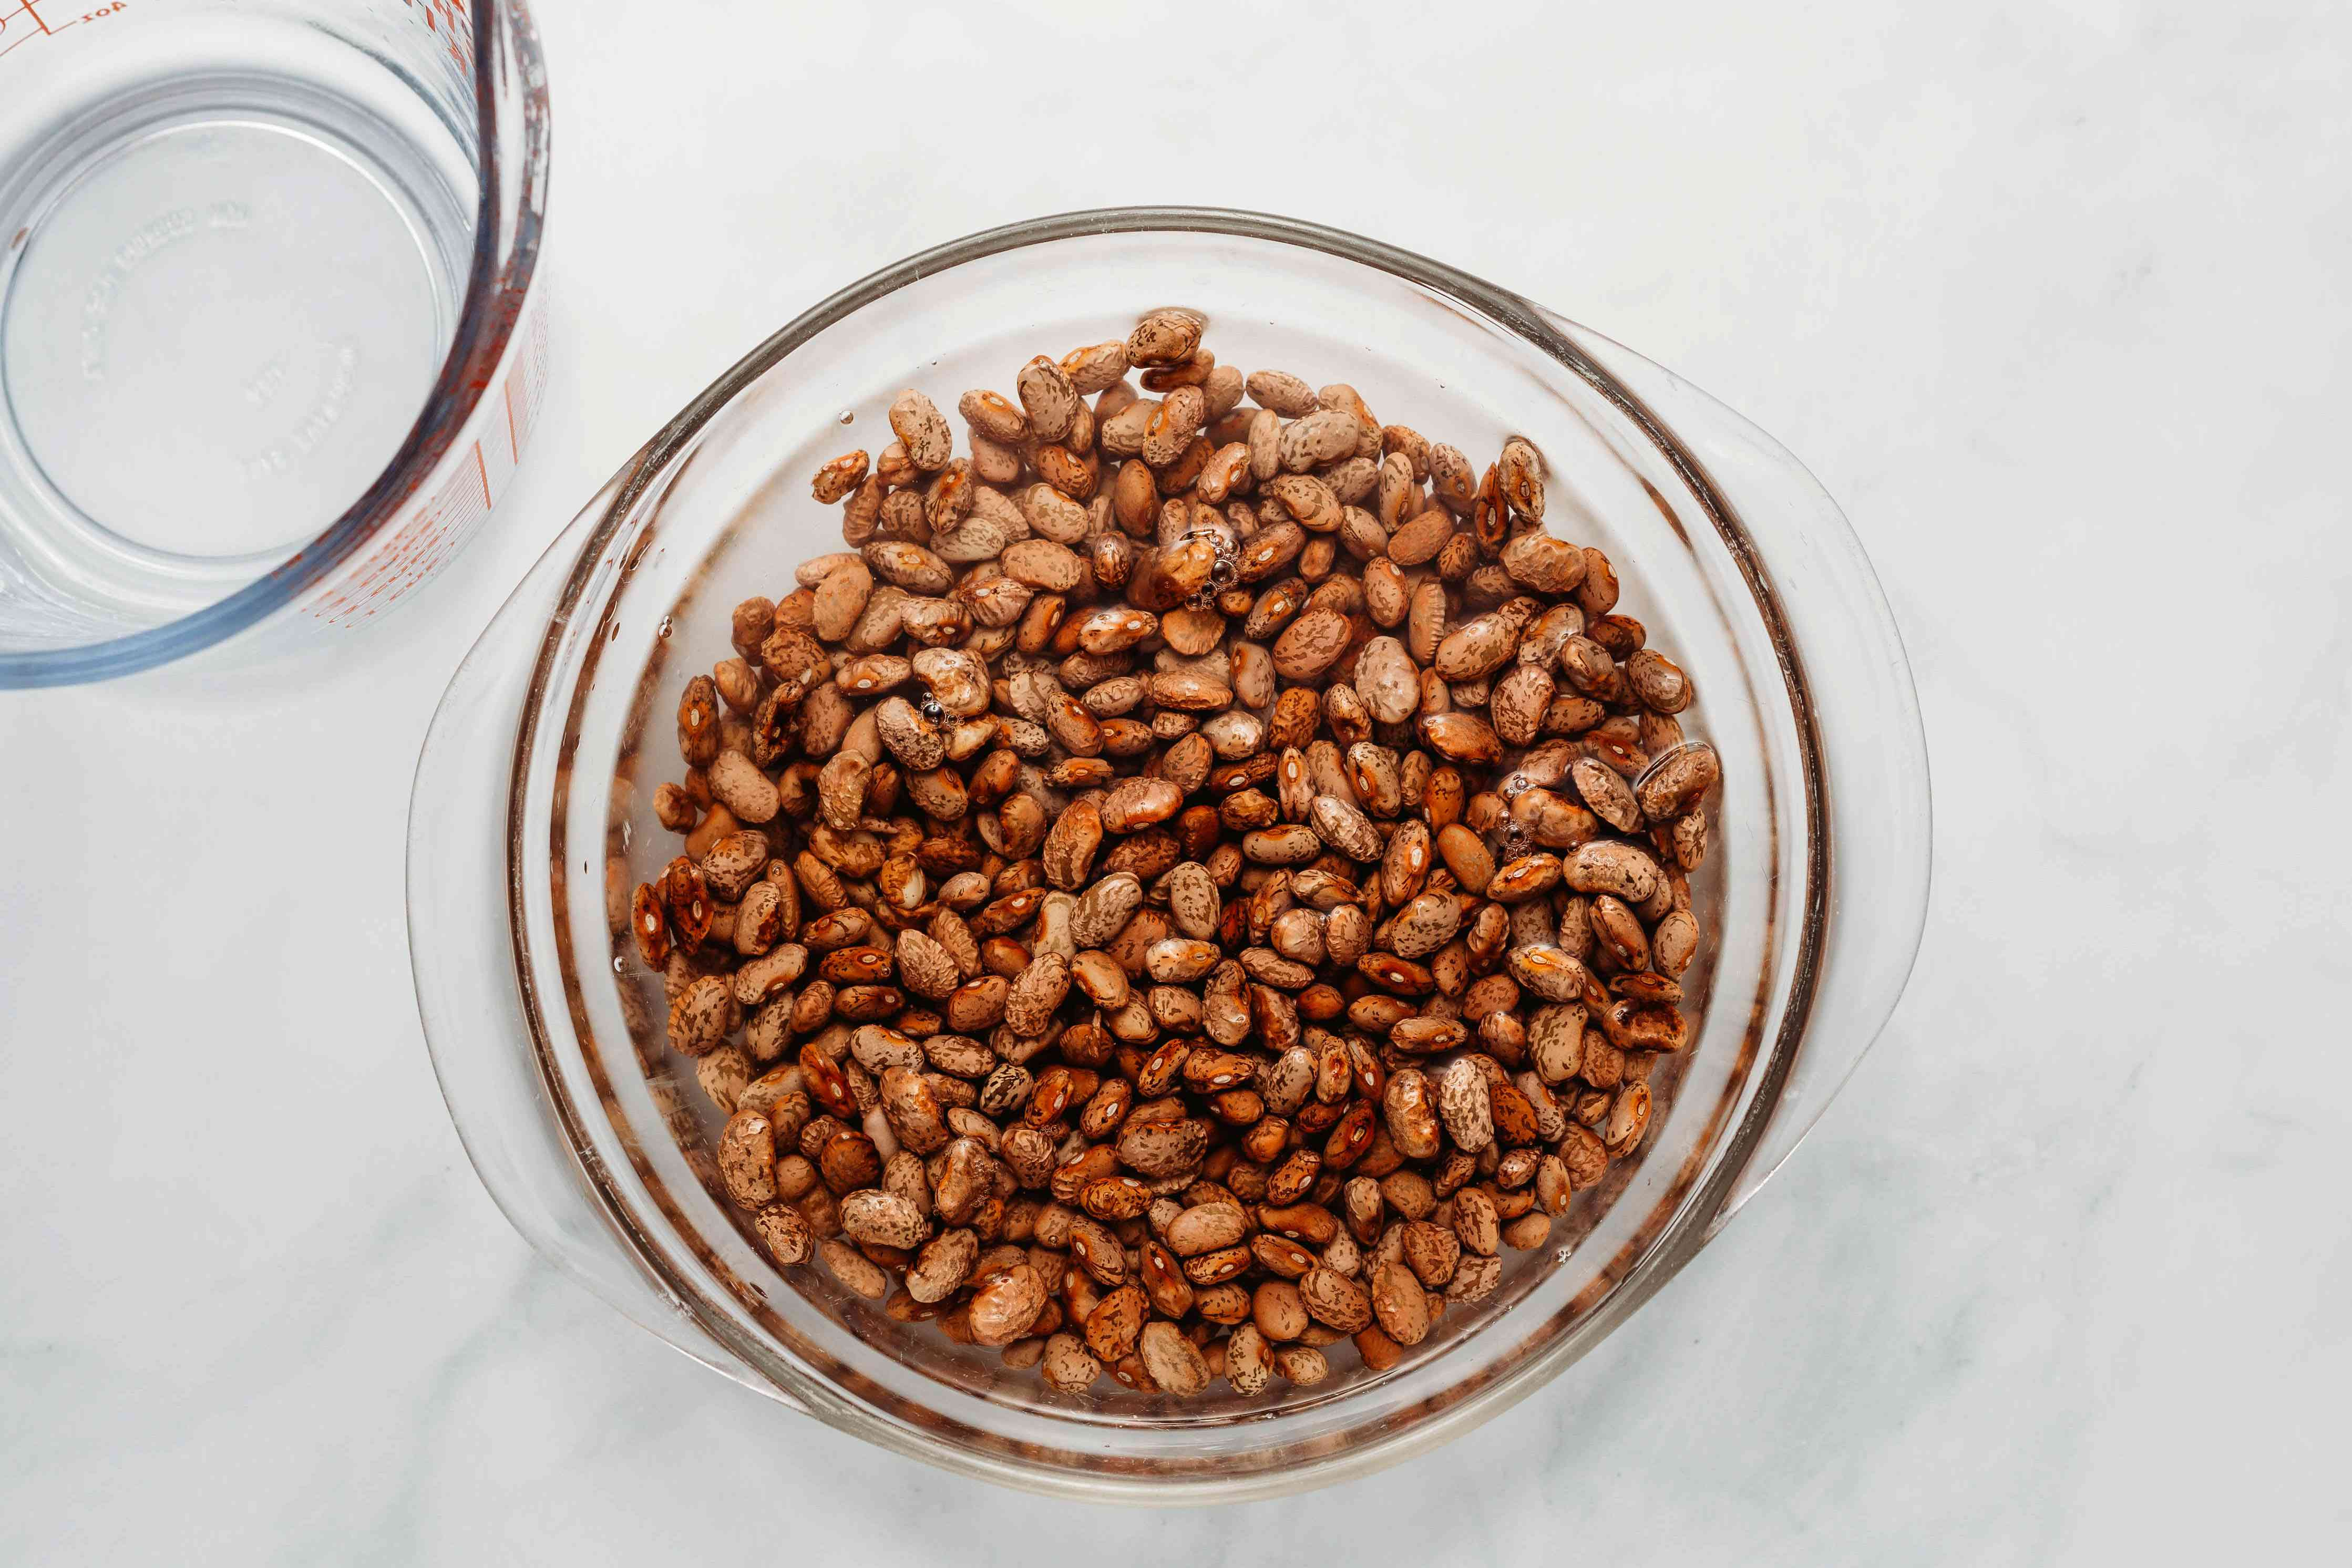 Soak the beans in water in a bowl